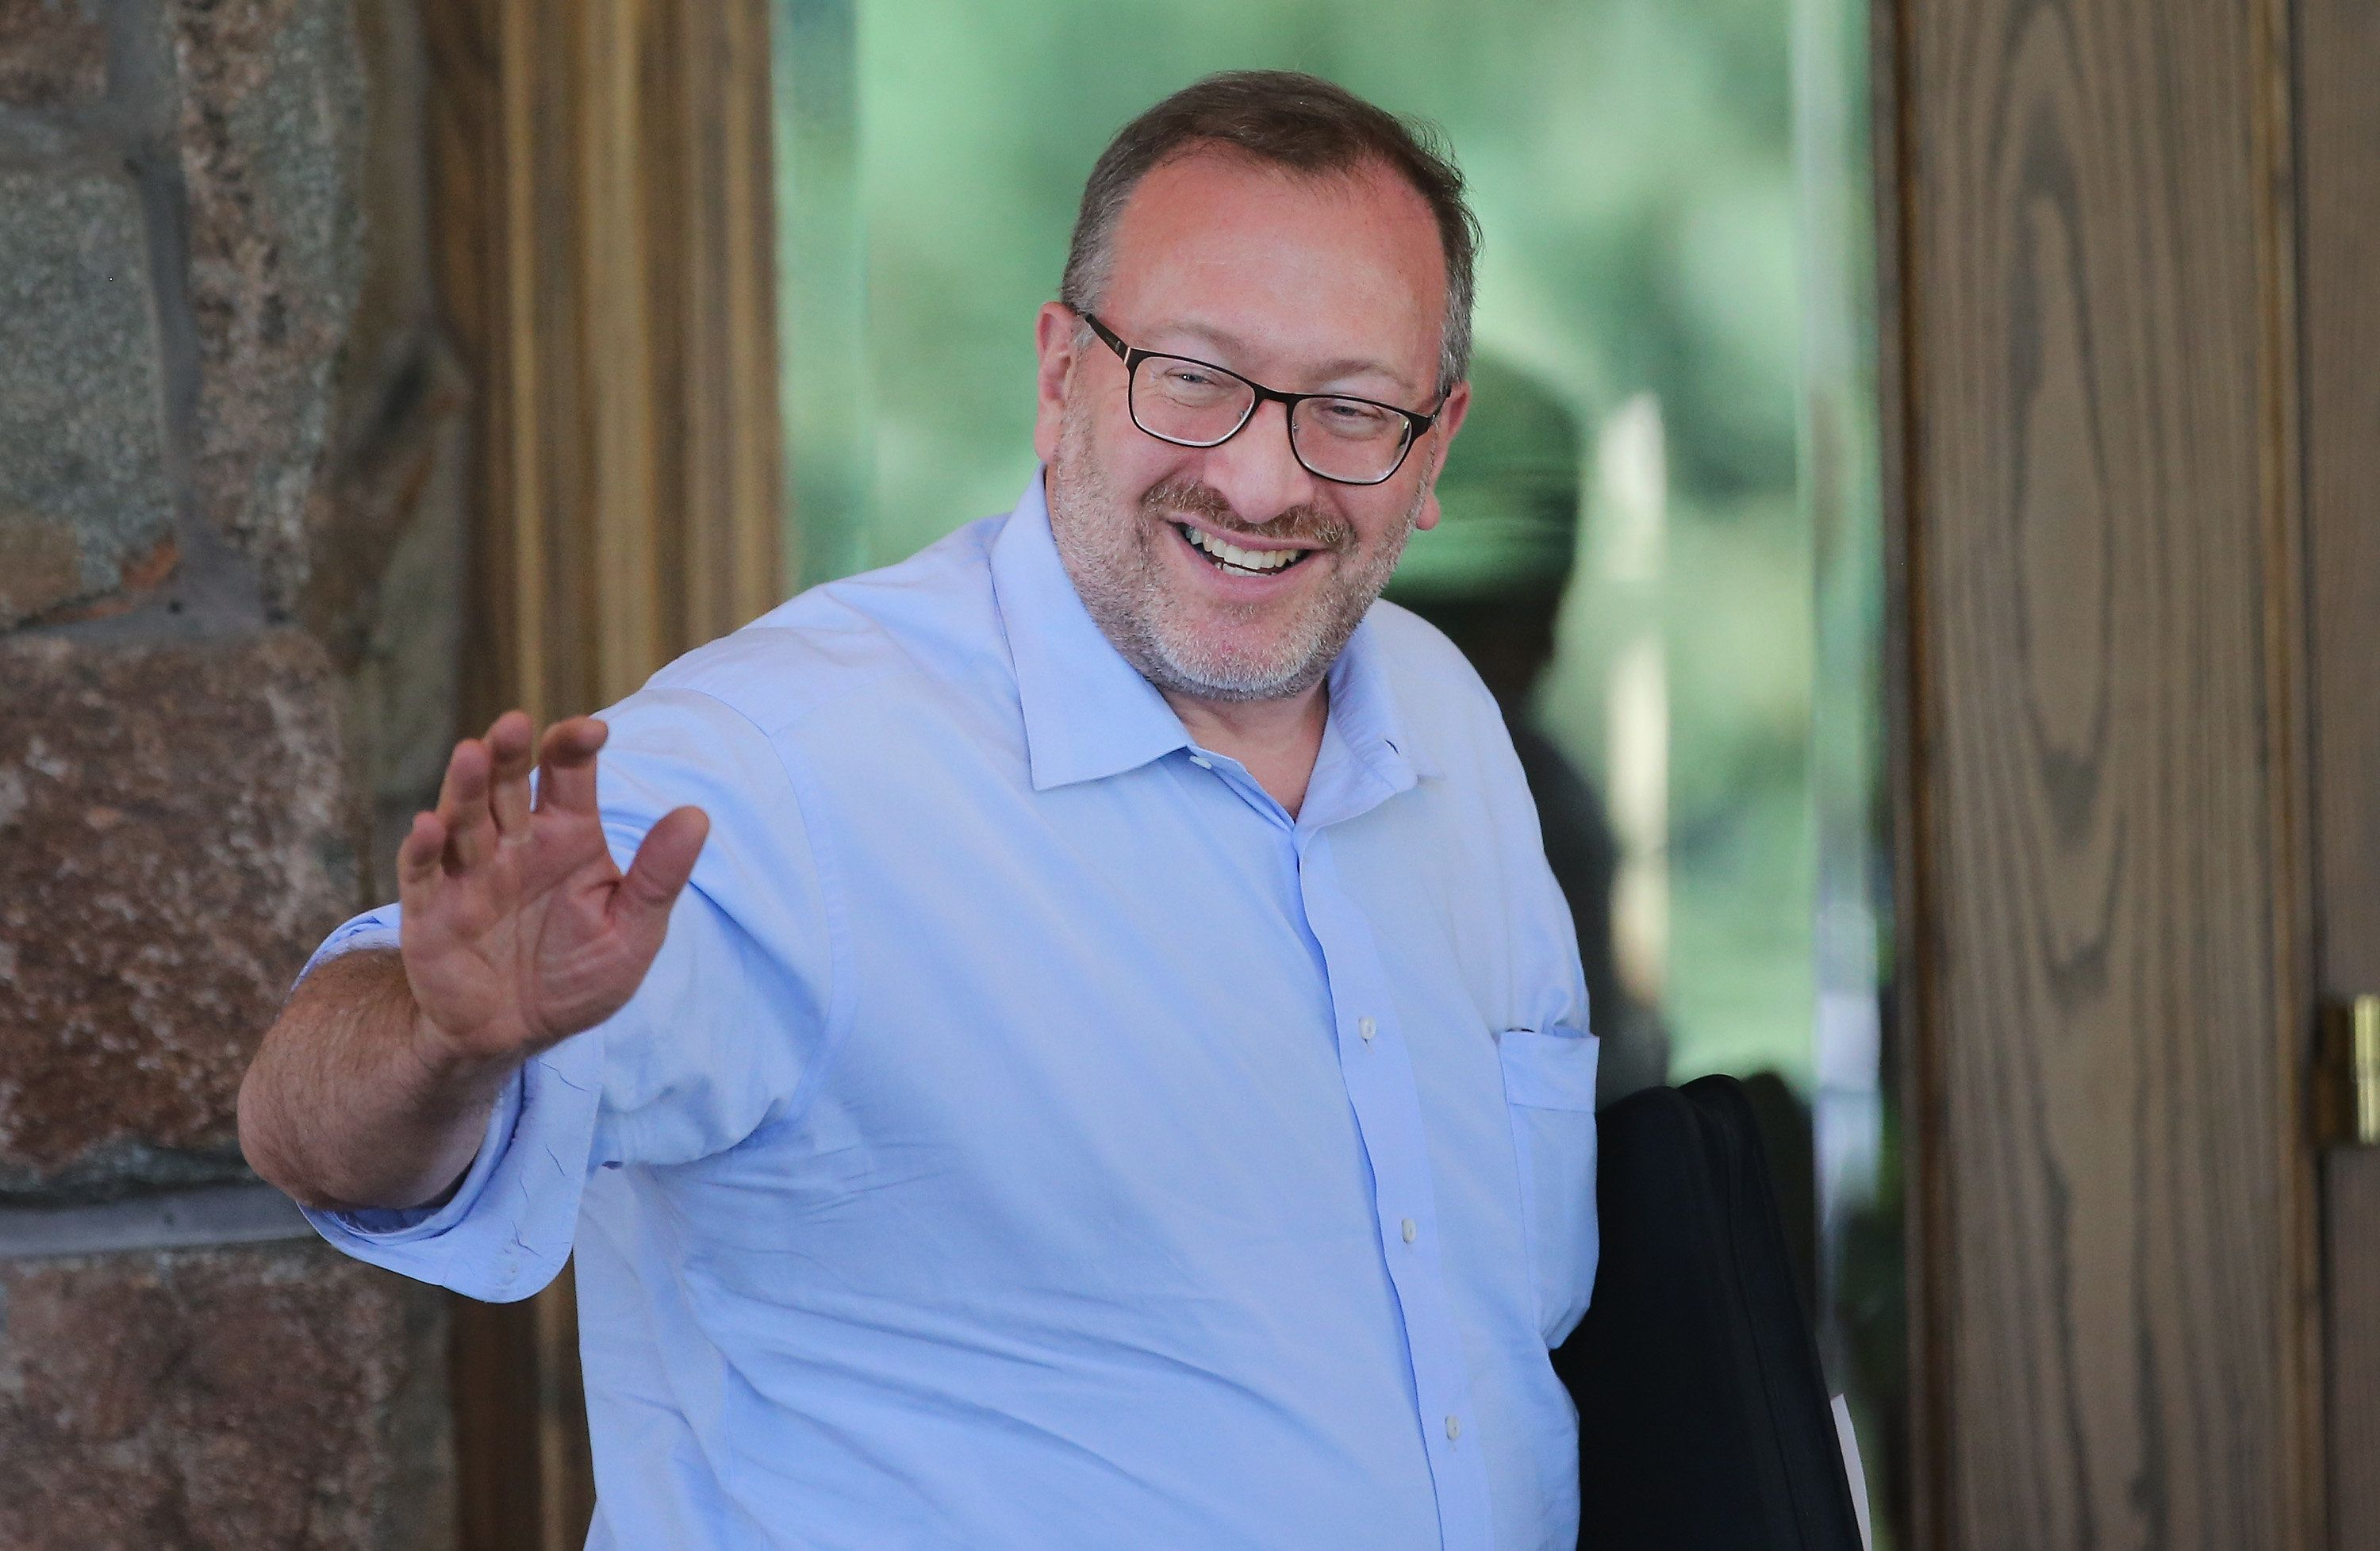 SUN VALLEY, ID - JULY 08:  Seth Klarman, founder and president of the Baupost Group, a Boston based private investment partnership, arrives for the Allen & Company Sun Valley Conference on July 8, 2014 in Sun Valley, Idaho. Many of the worlds wealthiest and most powerful businessmen from media, finance, and technology attend the annual week-long conference which is in its 32nd year.  (Photo by Scott Olson/Getty Images)